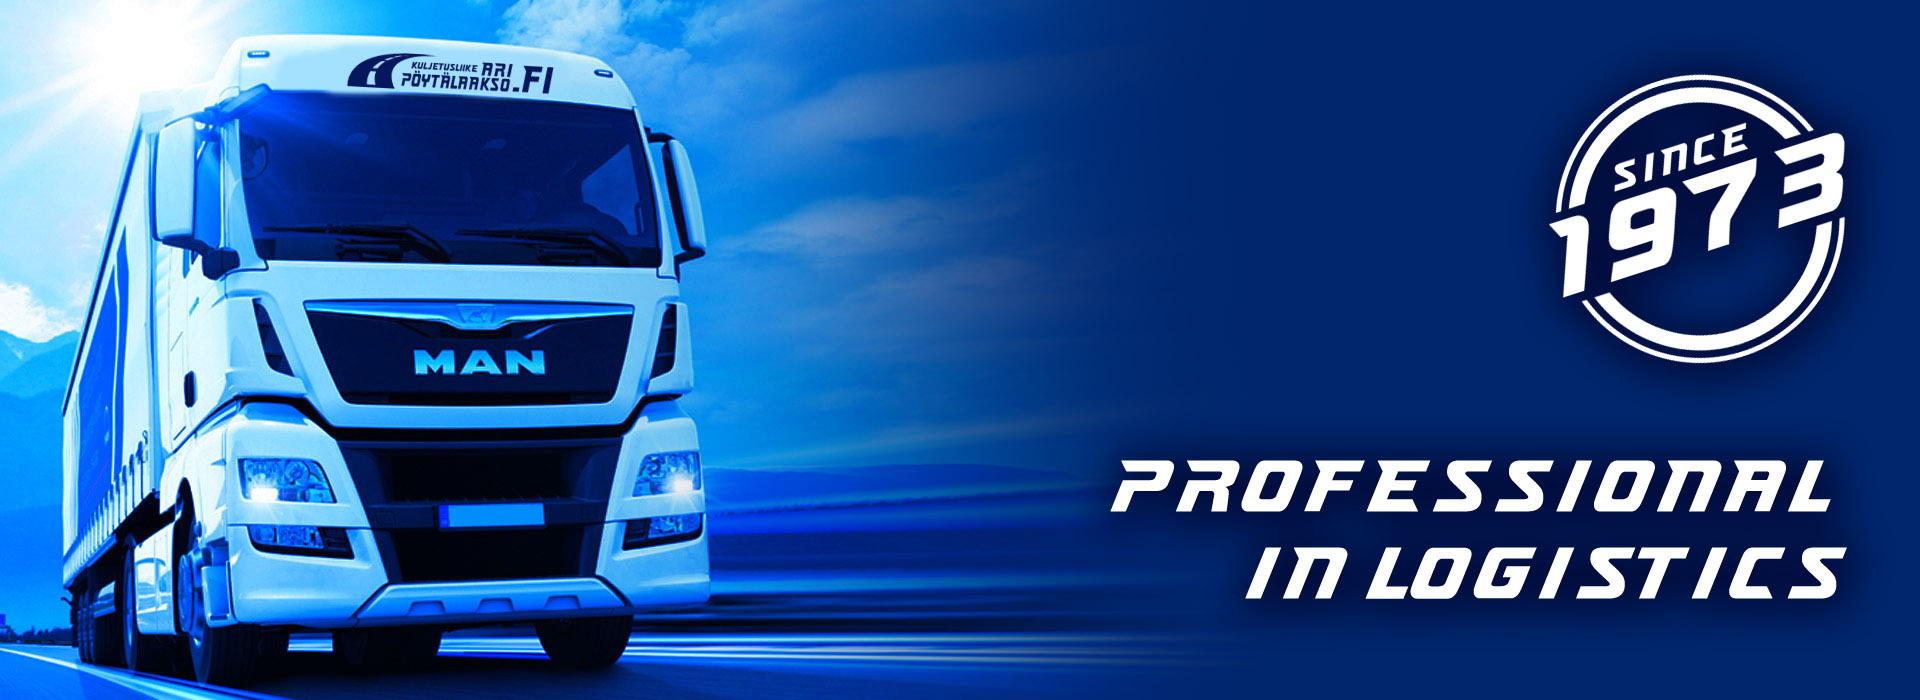 Customer-oriented transport with good attitude and high quality of service!